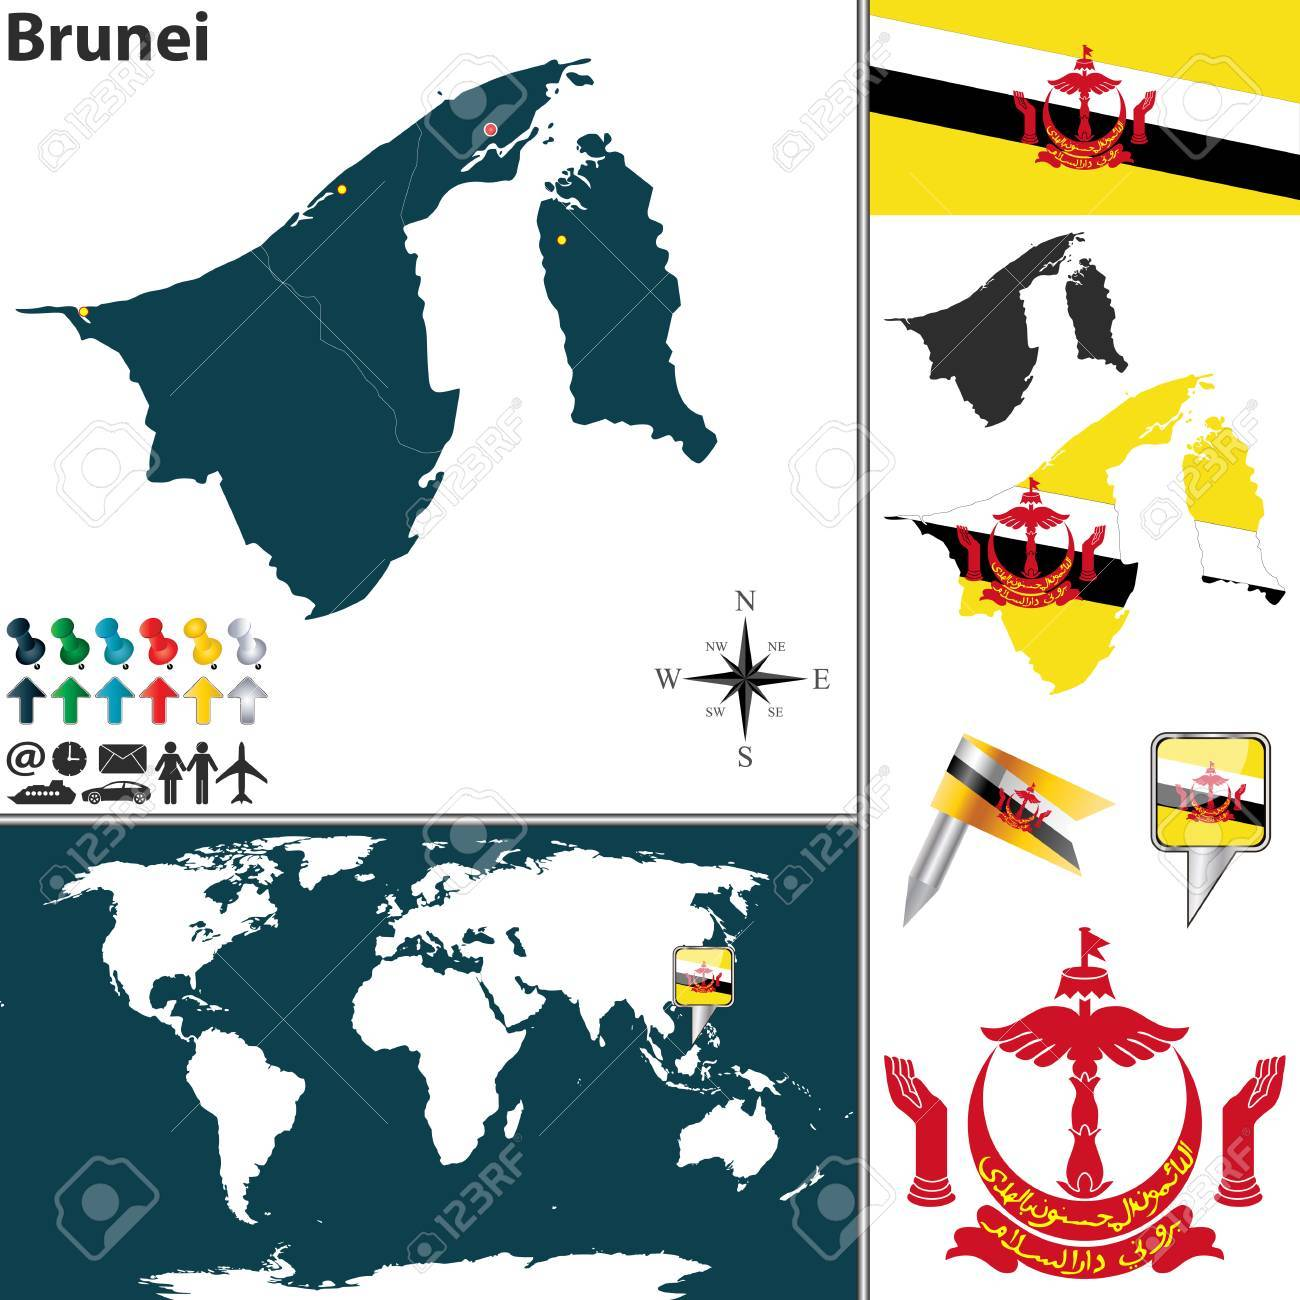 Map of brunei with regions coat of arms and location on world map of brunei with regions coat of arms and location on world map stock vector gumiabroncs Images